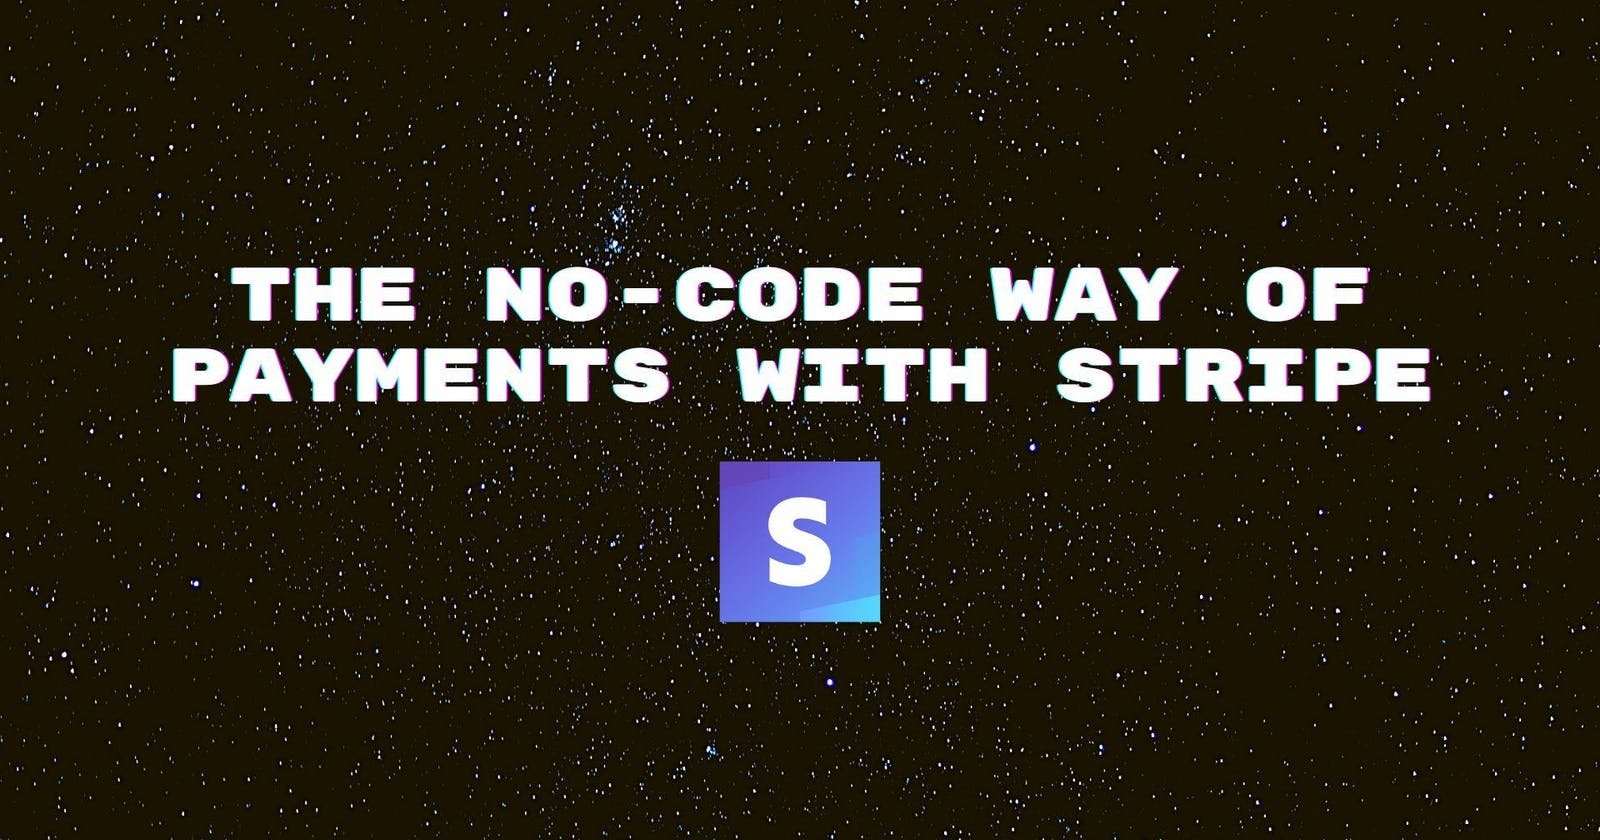 The No-Code Way of Payments with Stripe: A Brief Guide